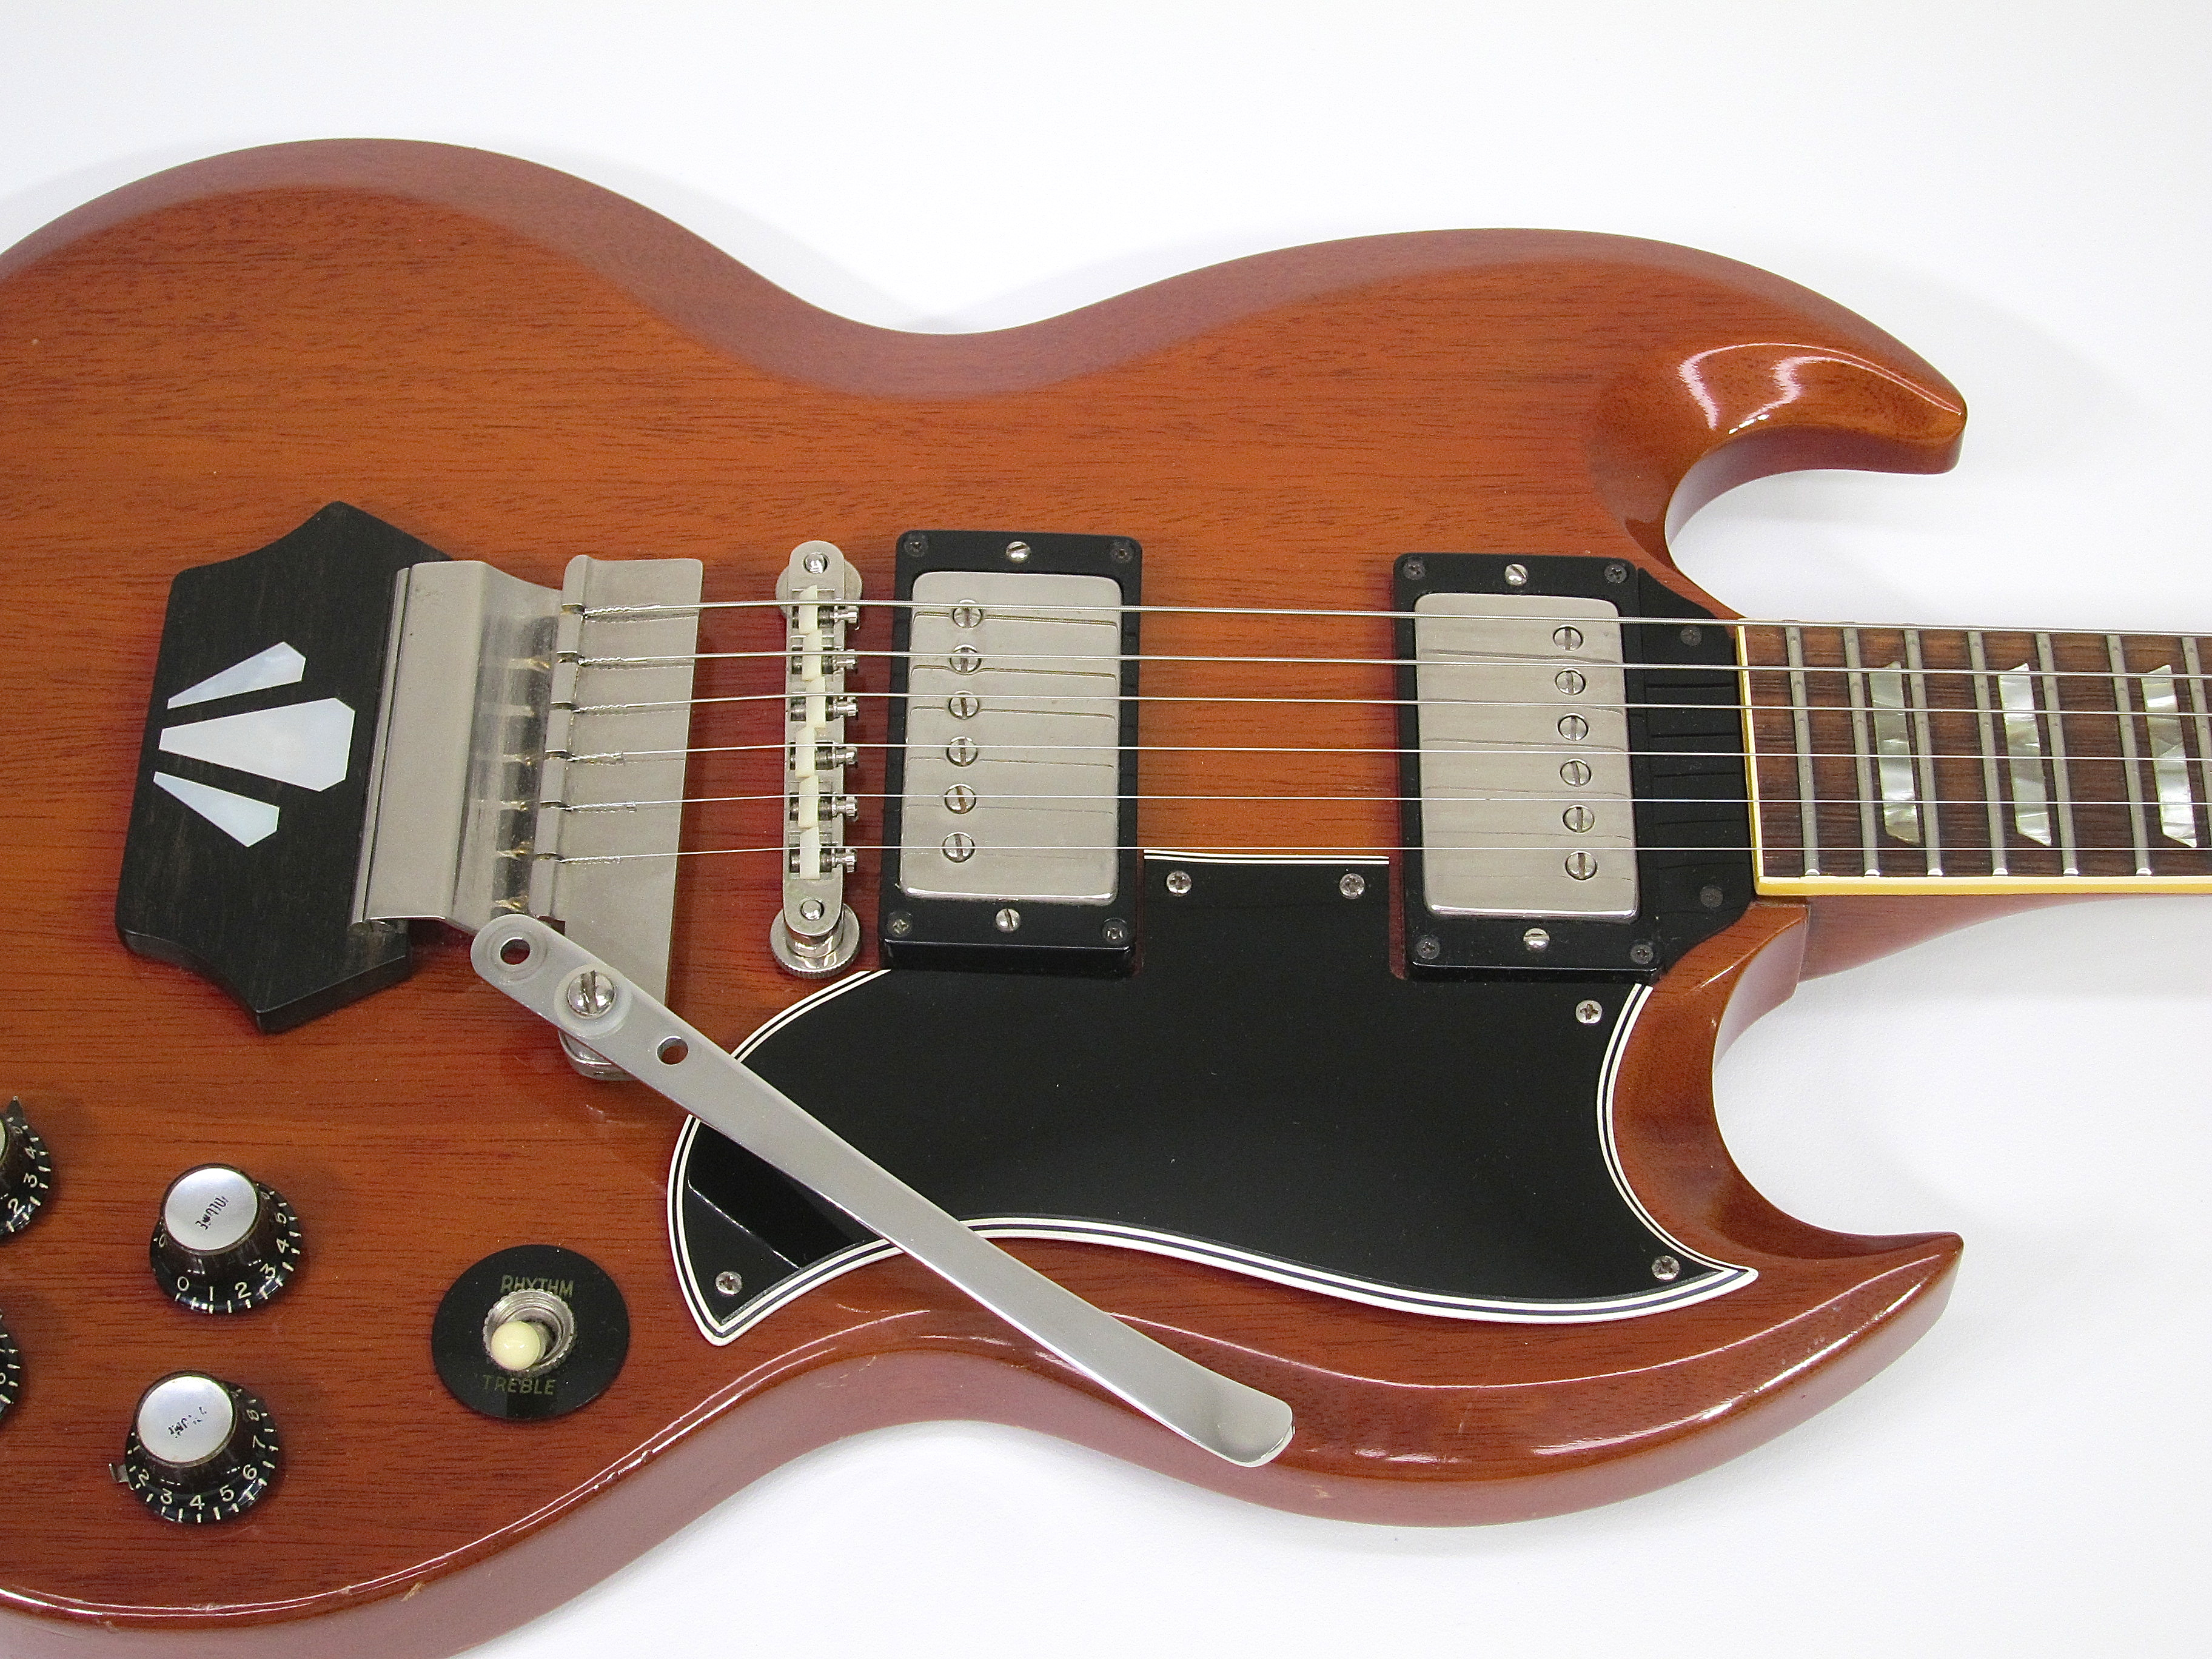 1962 gibson sg standard ebony block cherry red faded guitars electric solid body vintage. Black Bedroom Furniture Sets. Home Design Ideas